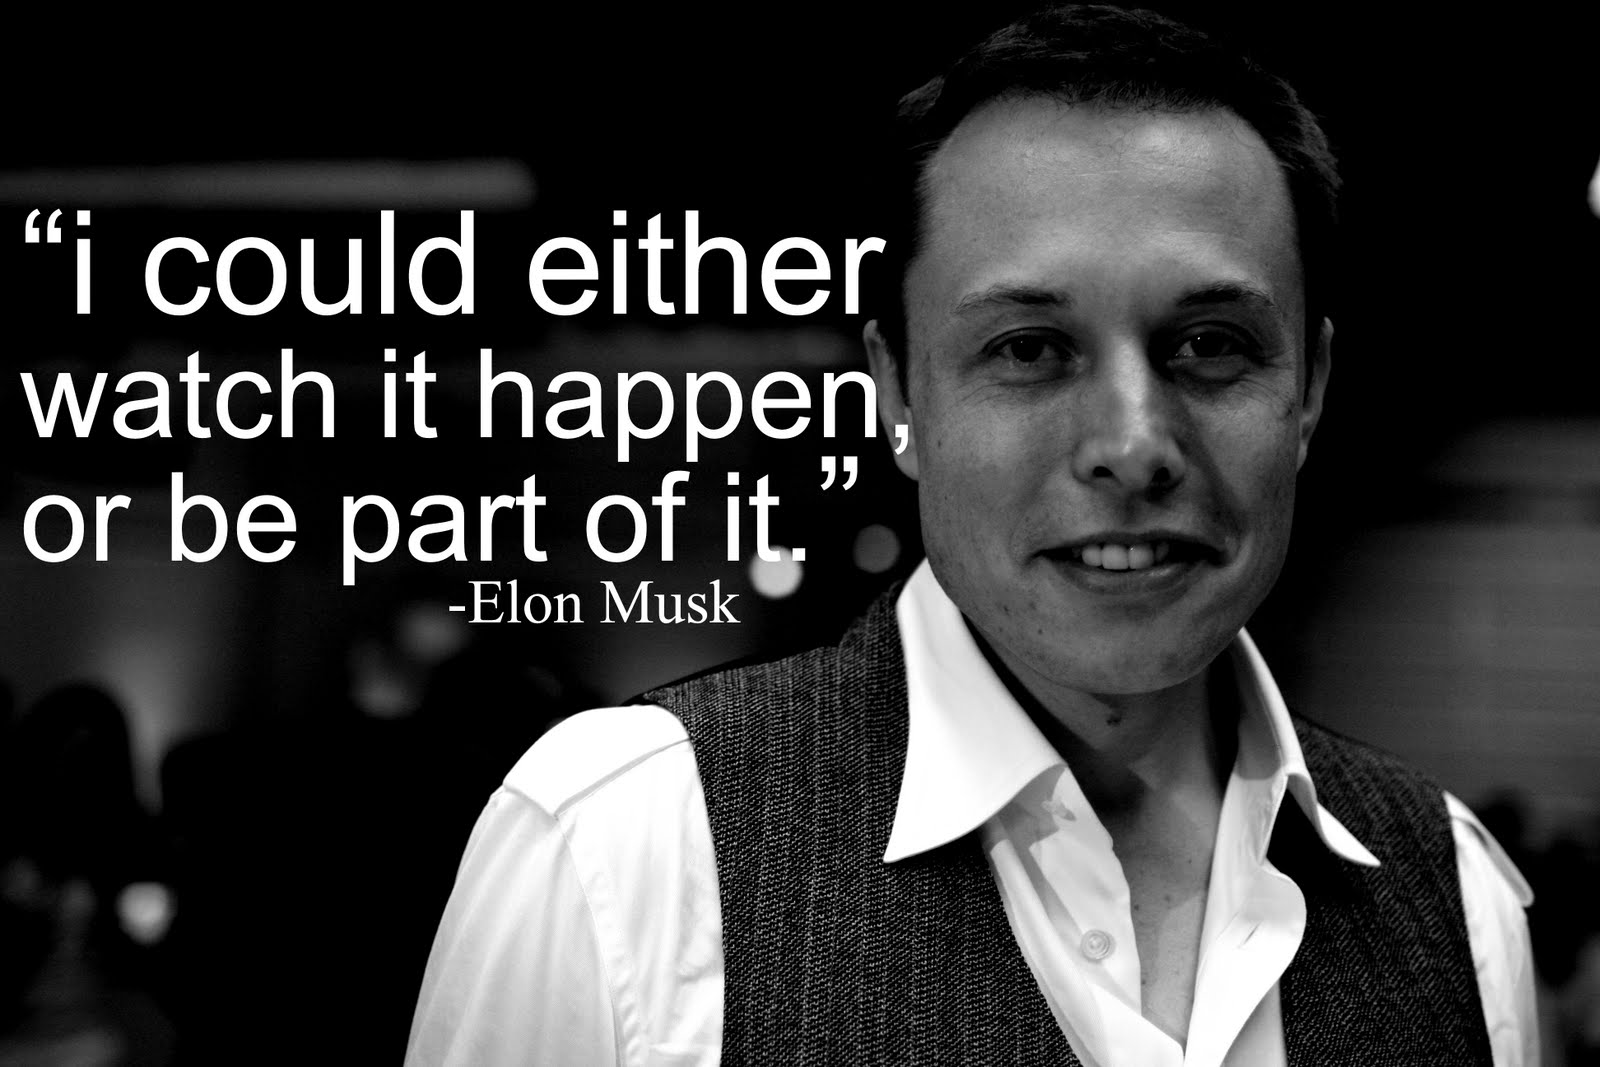 Elon Musk Quotes: The Genius Of Elon Musk, The Hyper Loop, And The